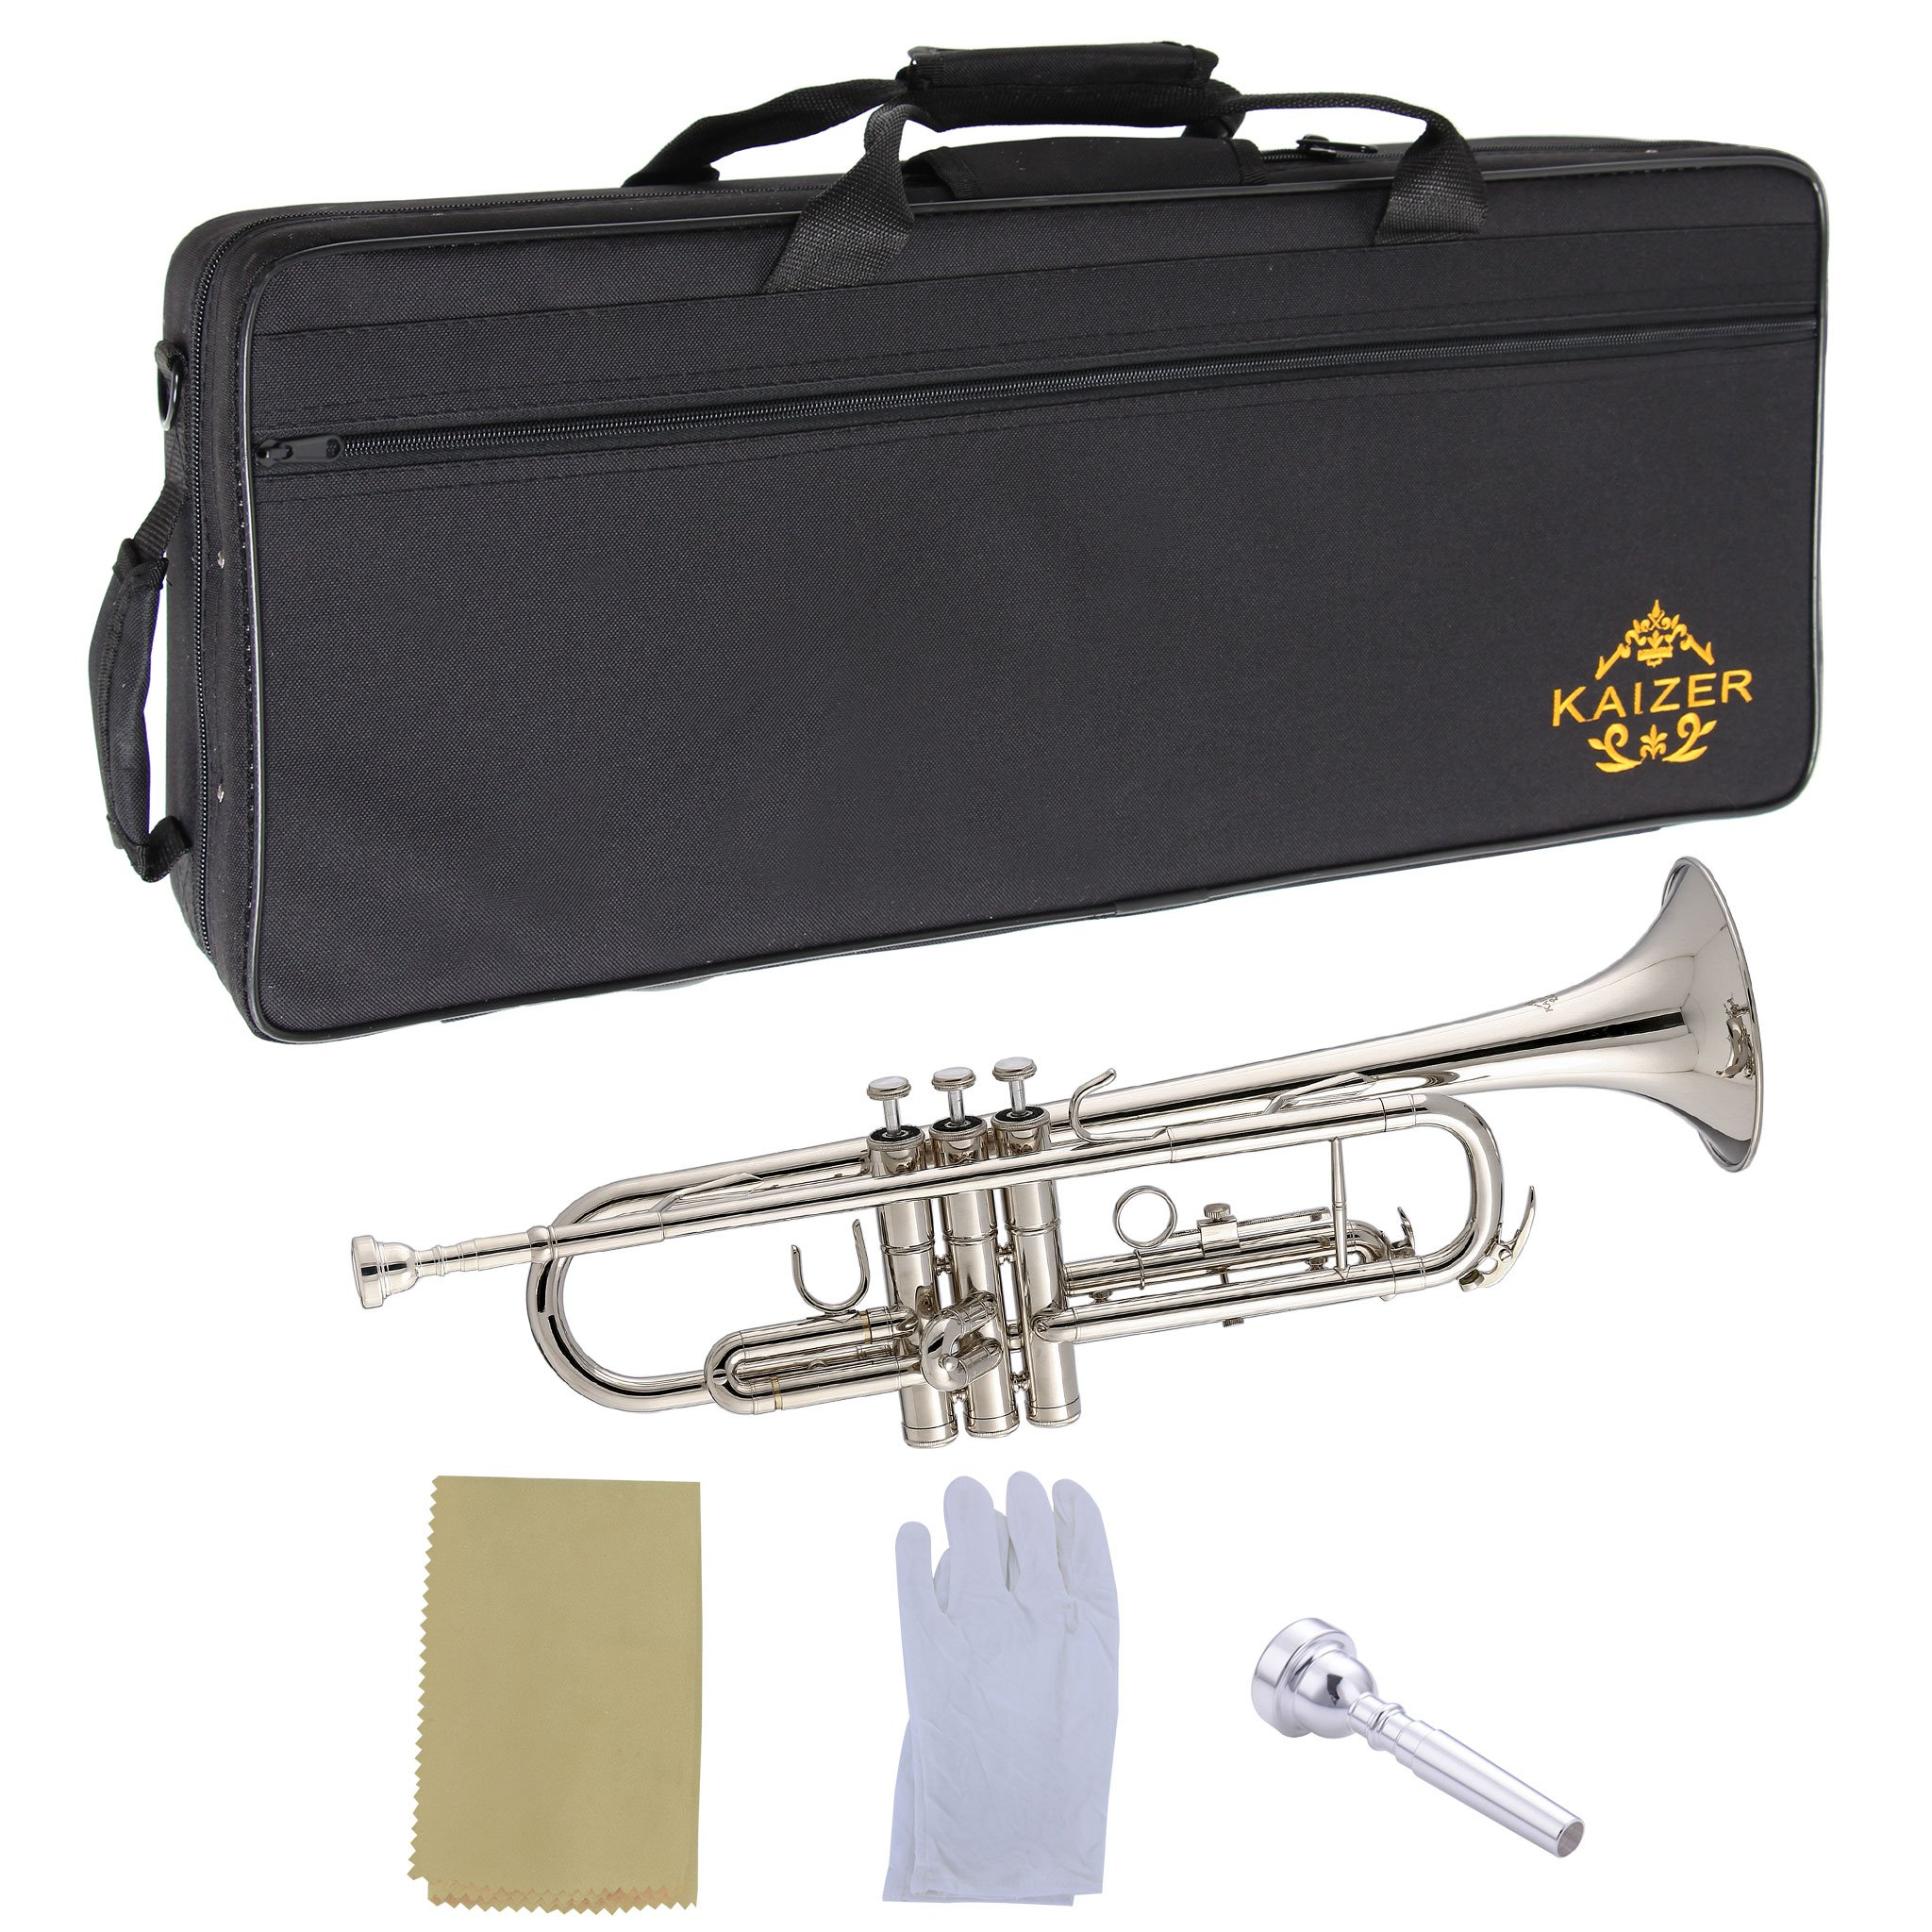 Kaizer Trumpet B Flat Bb Nickel Silver Includes Case Mouthpiece and Accessories TRP-1000NK